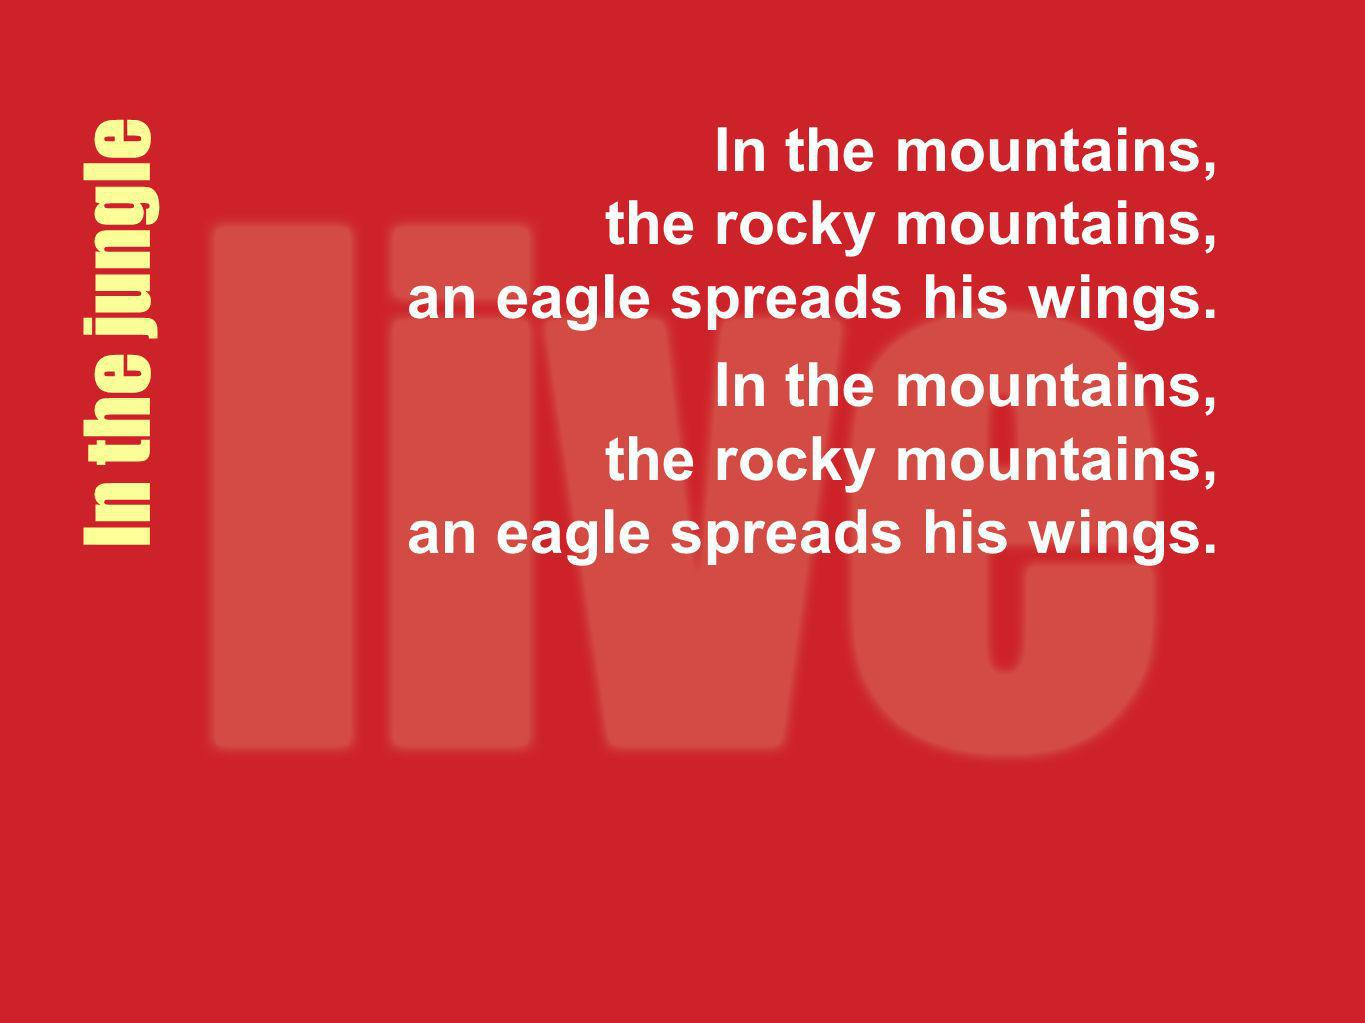 In the mountains, the rocky mountains, an eagle spreads his wings.